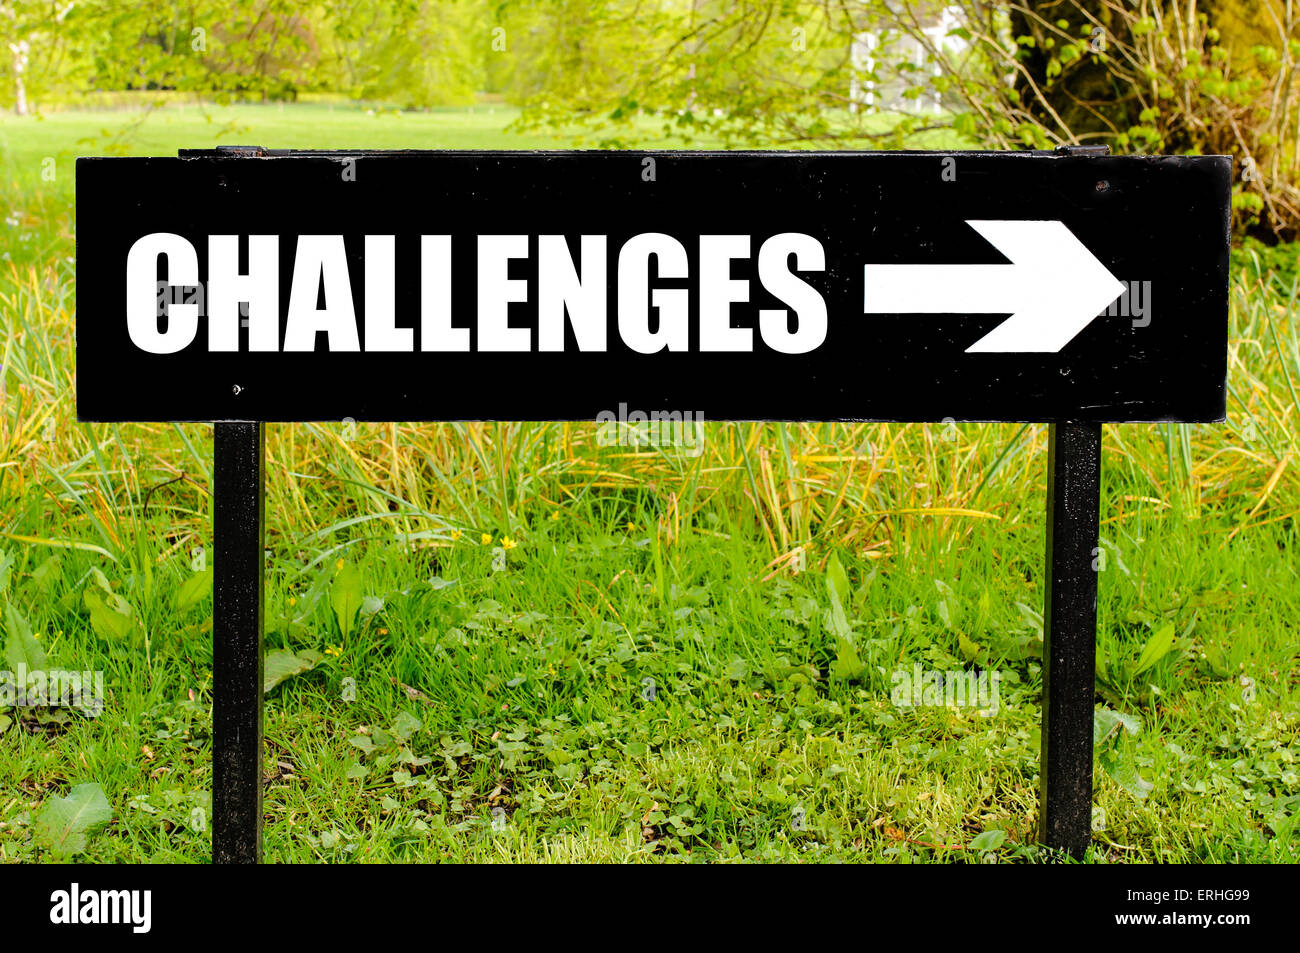 CHALLENGES written on directional black metal sign with arrow pointing to the right against natural green background. - Stock Image